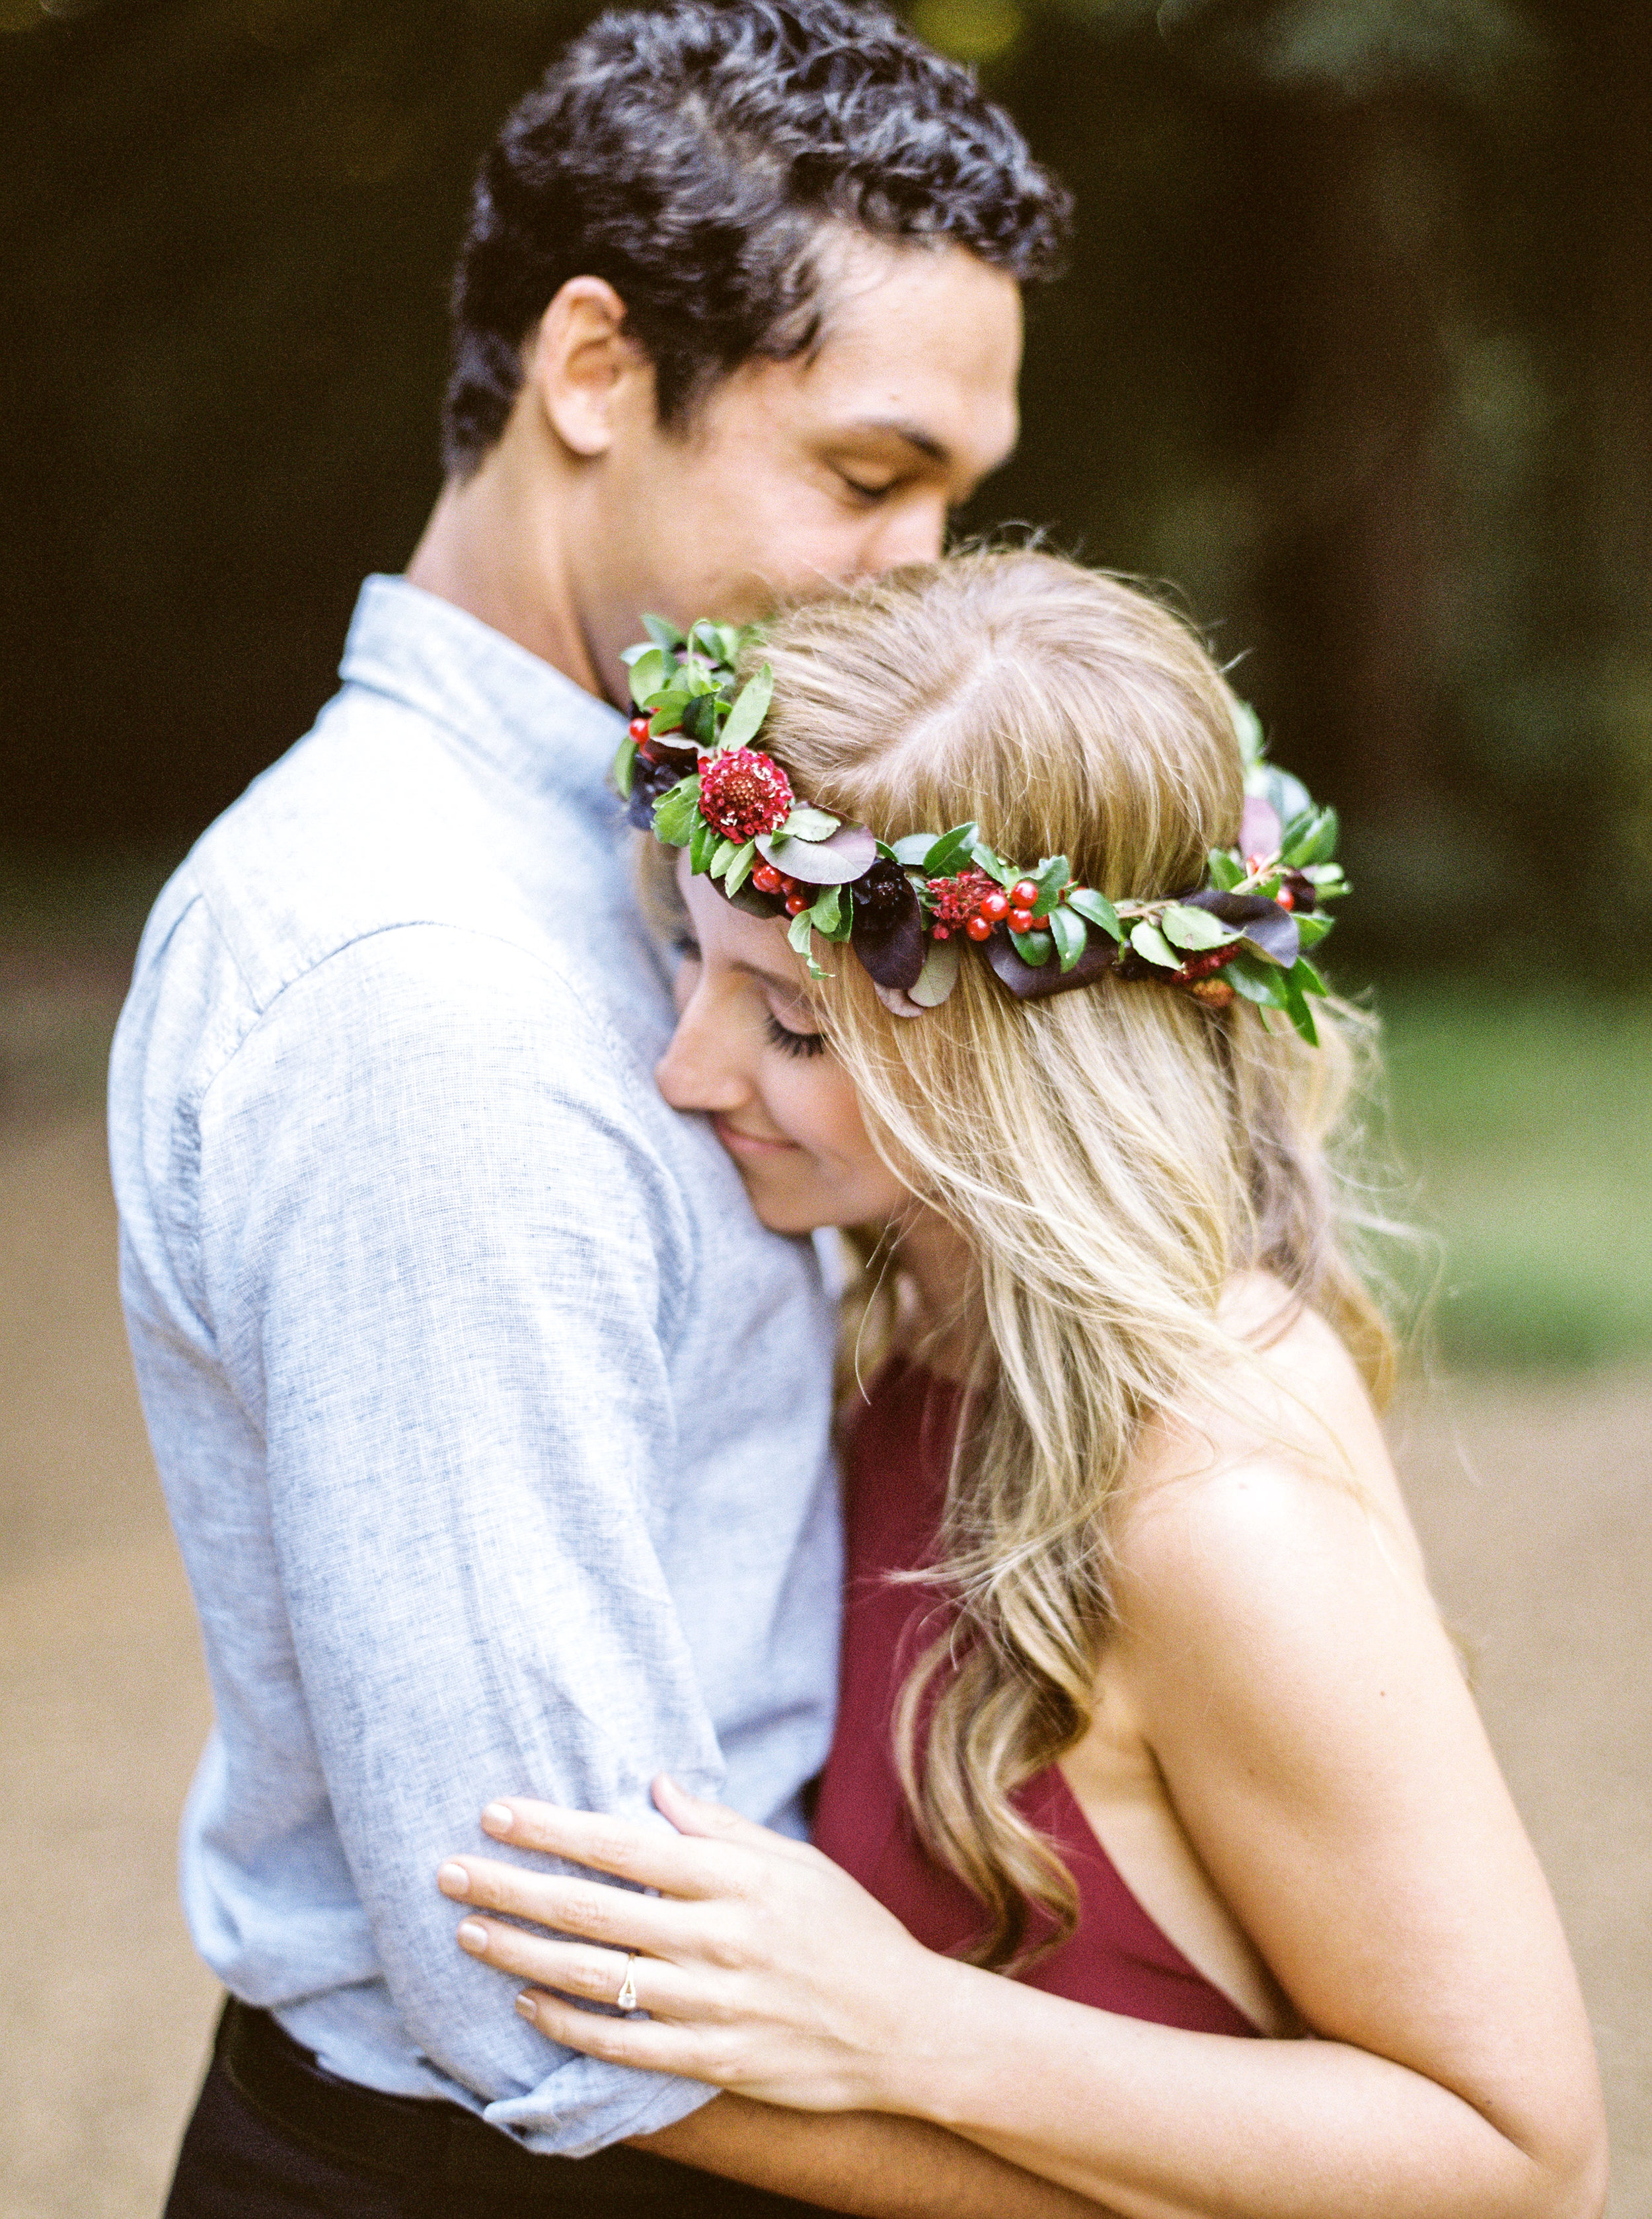 redwood-forest-engagement-in-oakland-california-14.jpg